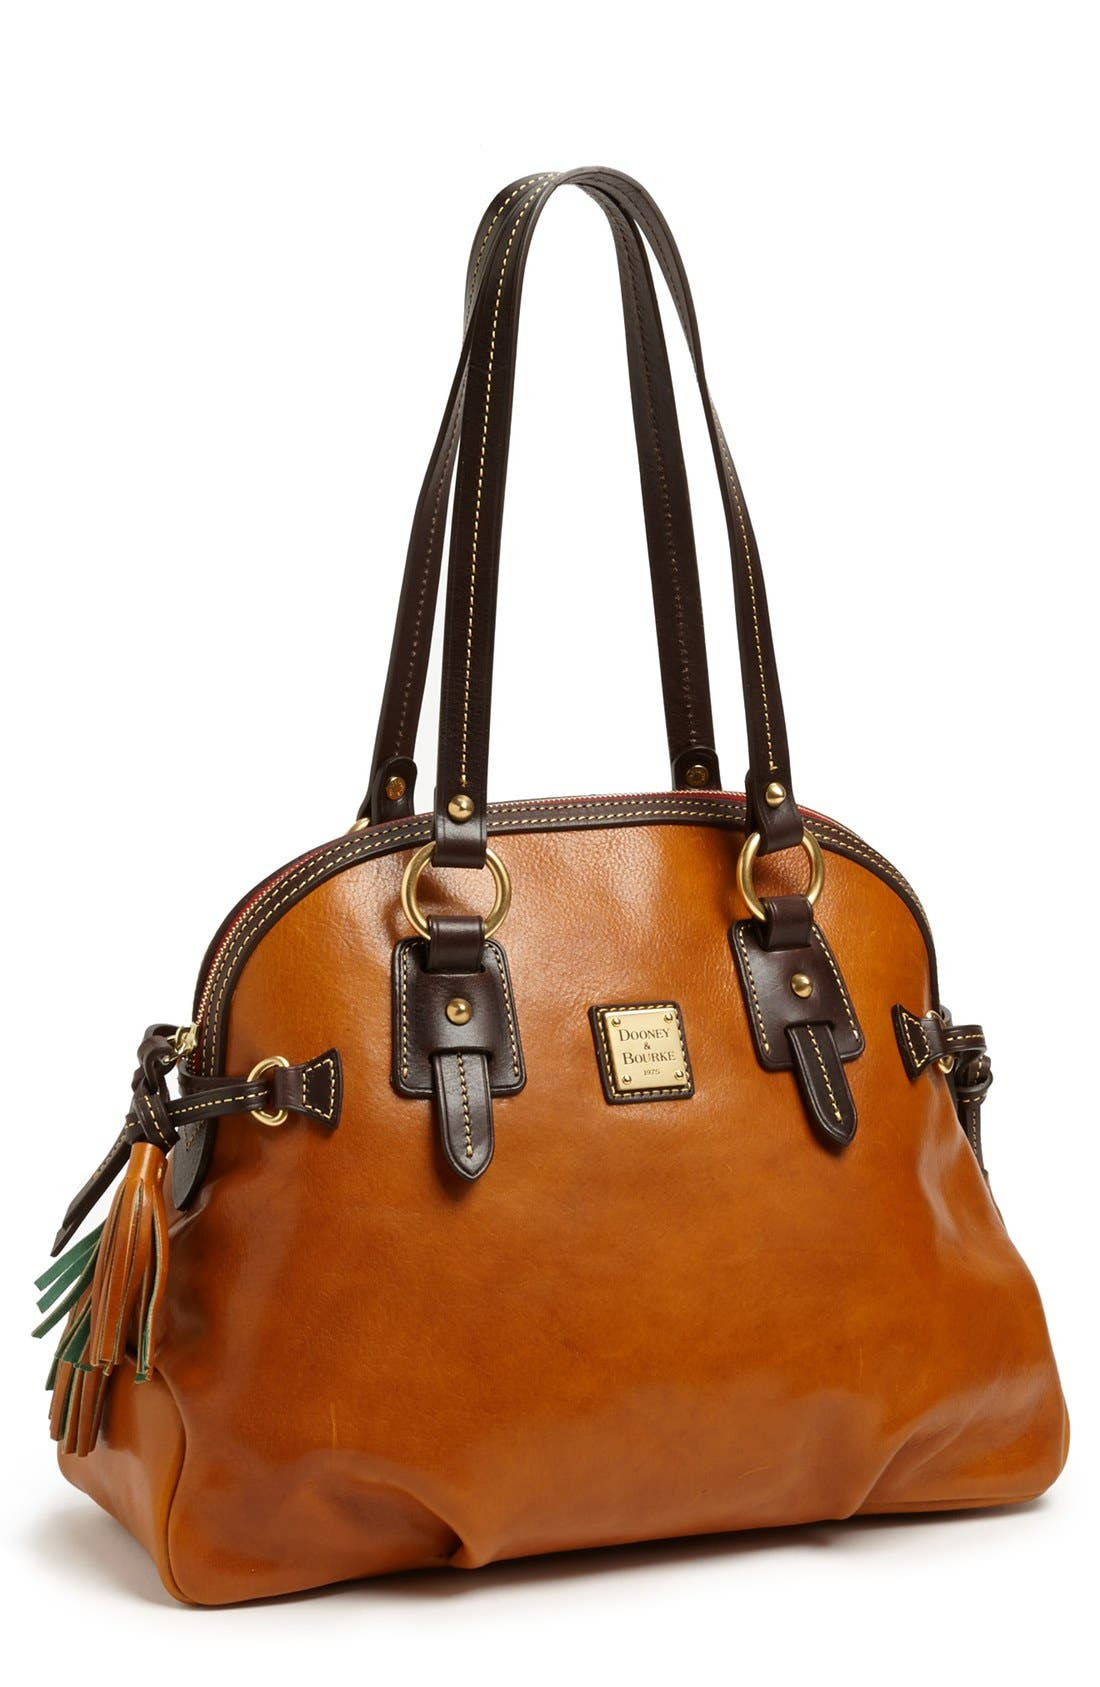 Main Image - Dooney & Bourke Leather Dome Satchel